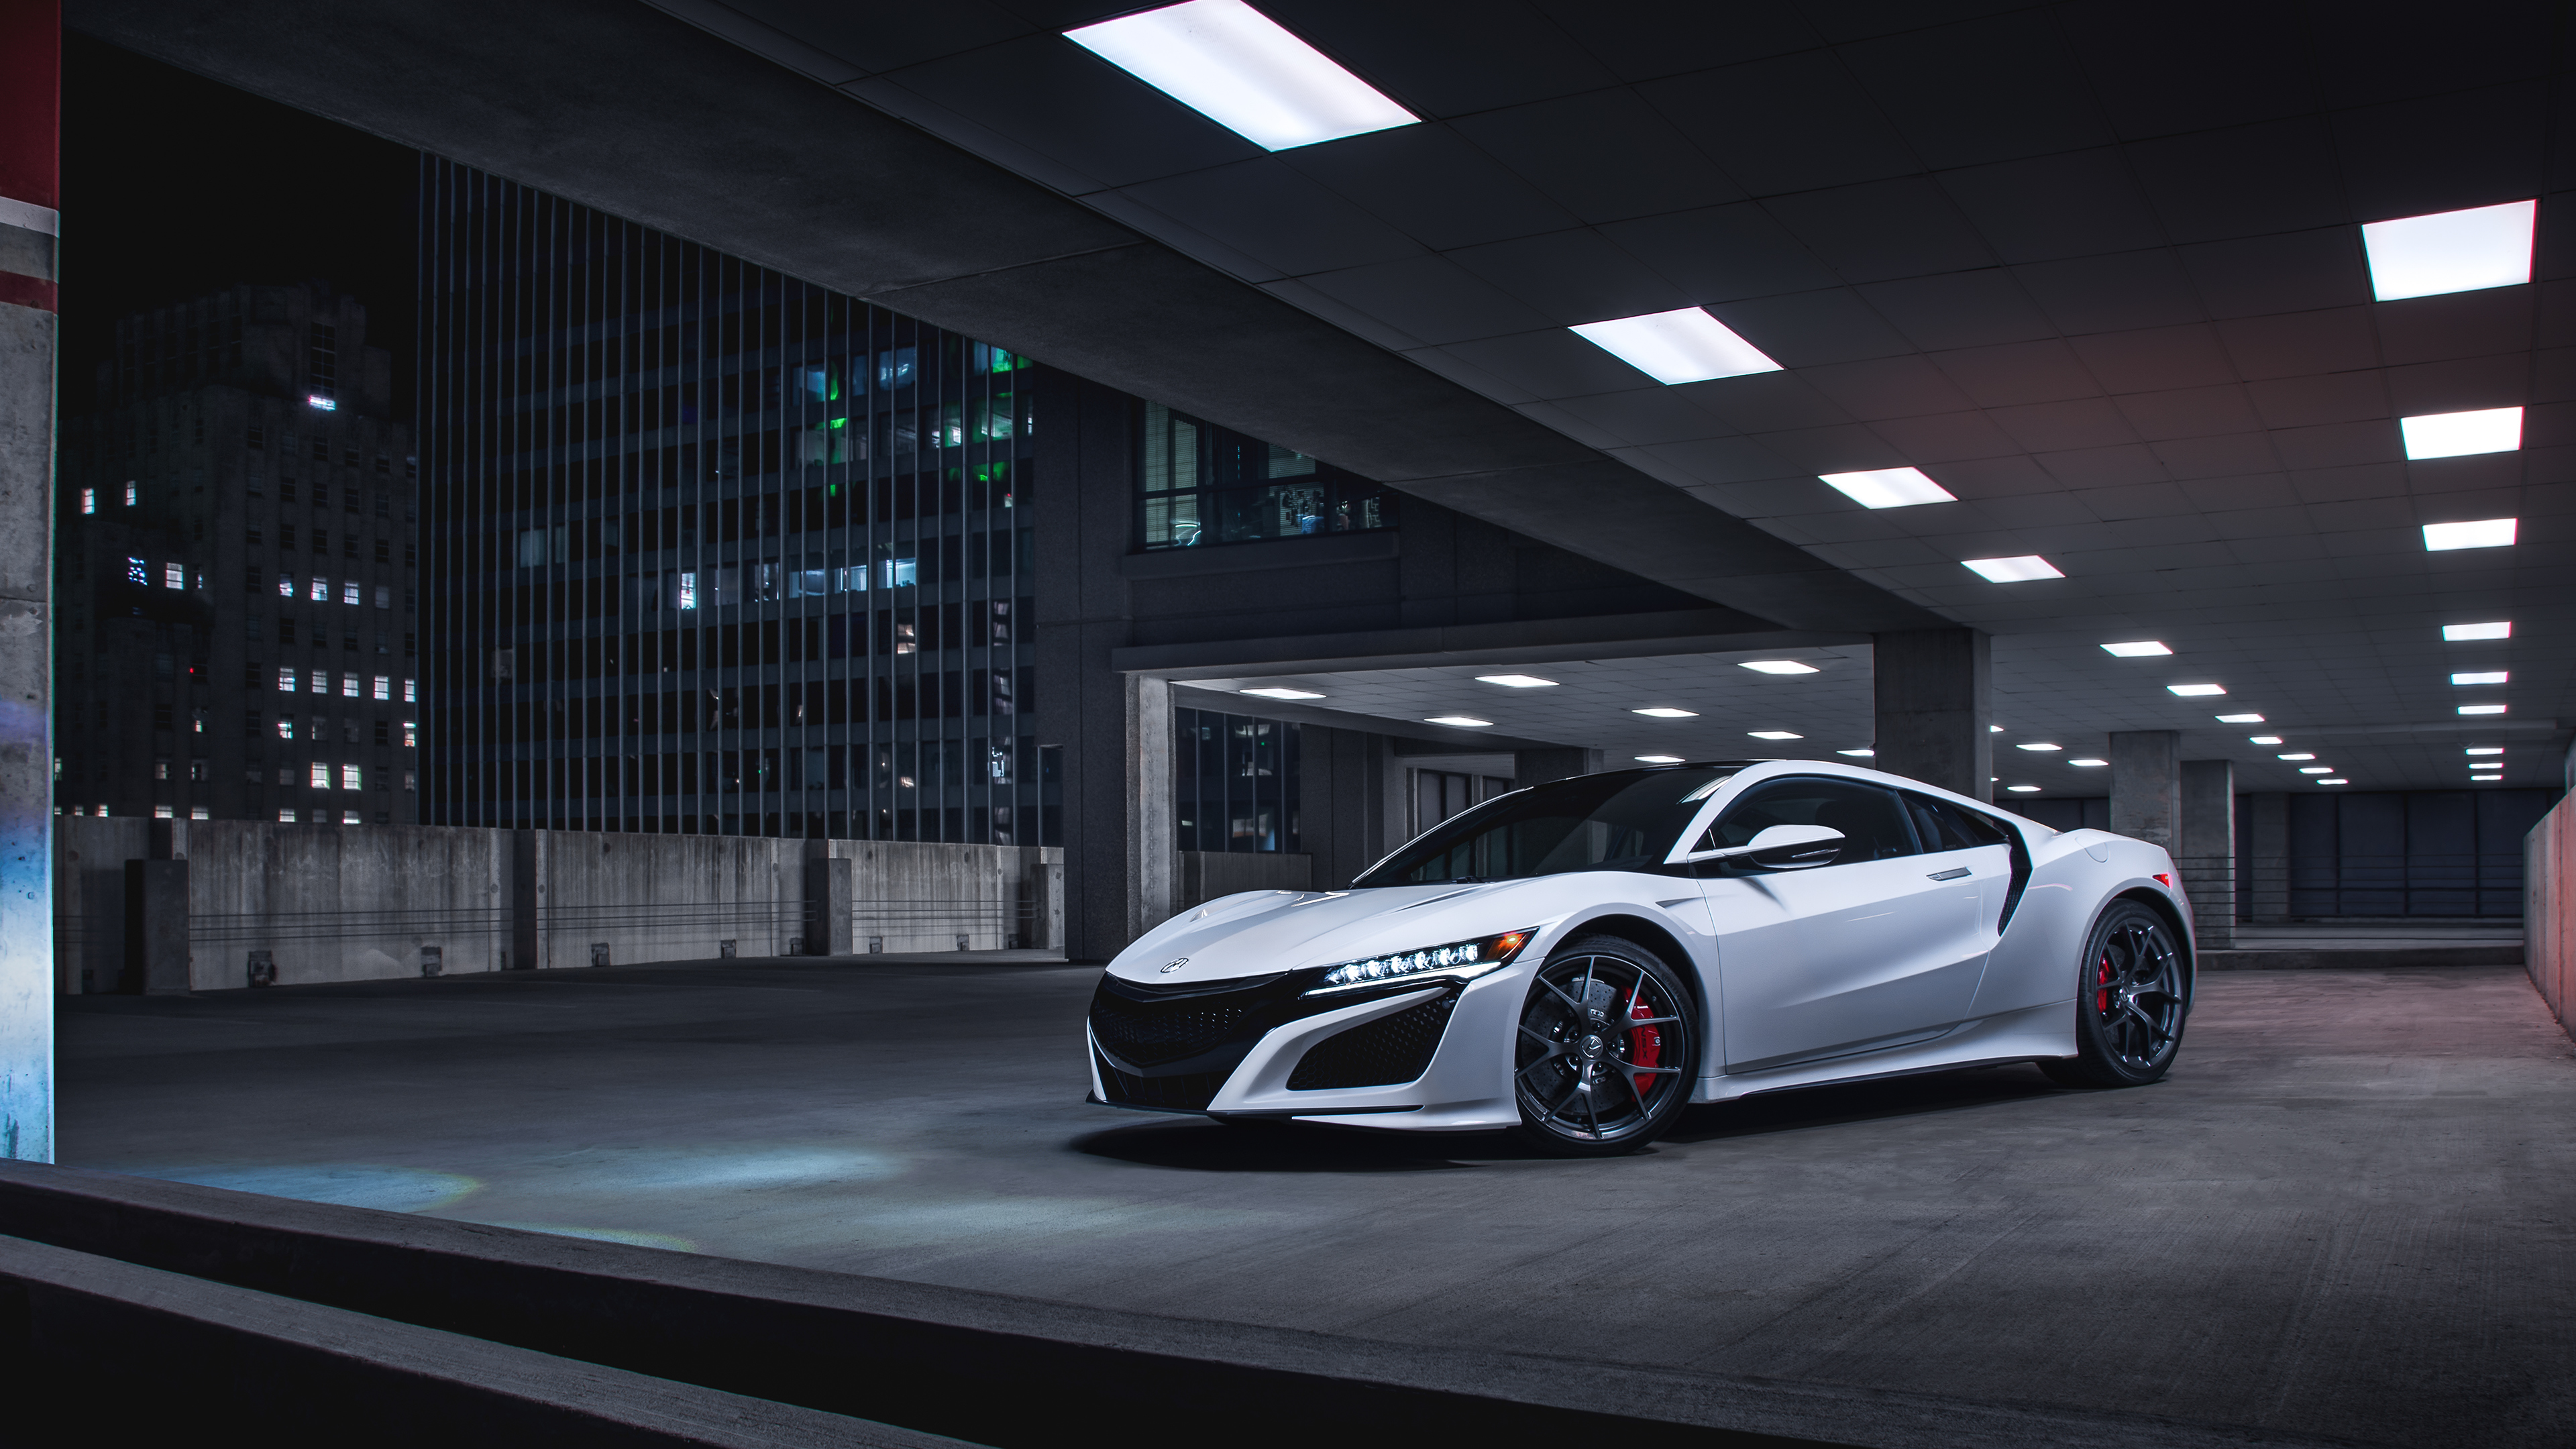 acura nsx 2019 1555206886 - Acura NSX 2019 - honda wallpapers, honda nsx wallpapers, hd-wallpapers, cars wallpapers, behance wallpapers, 4k-wallpapers